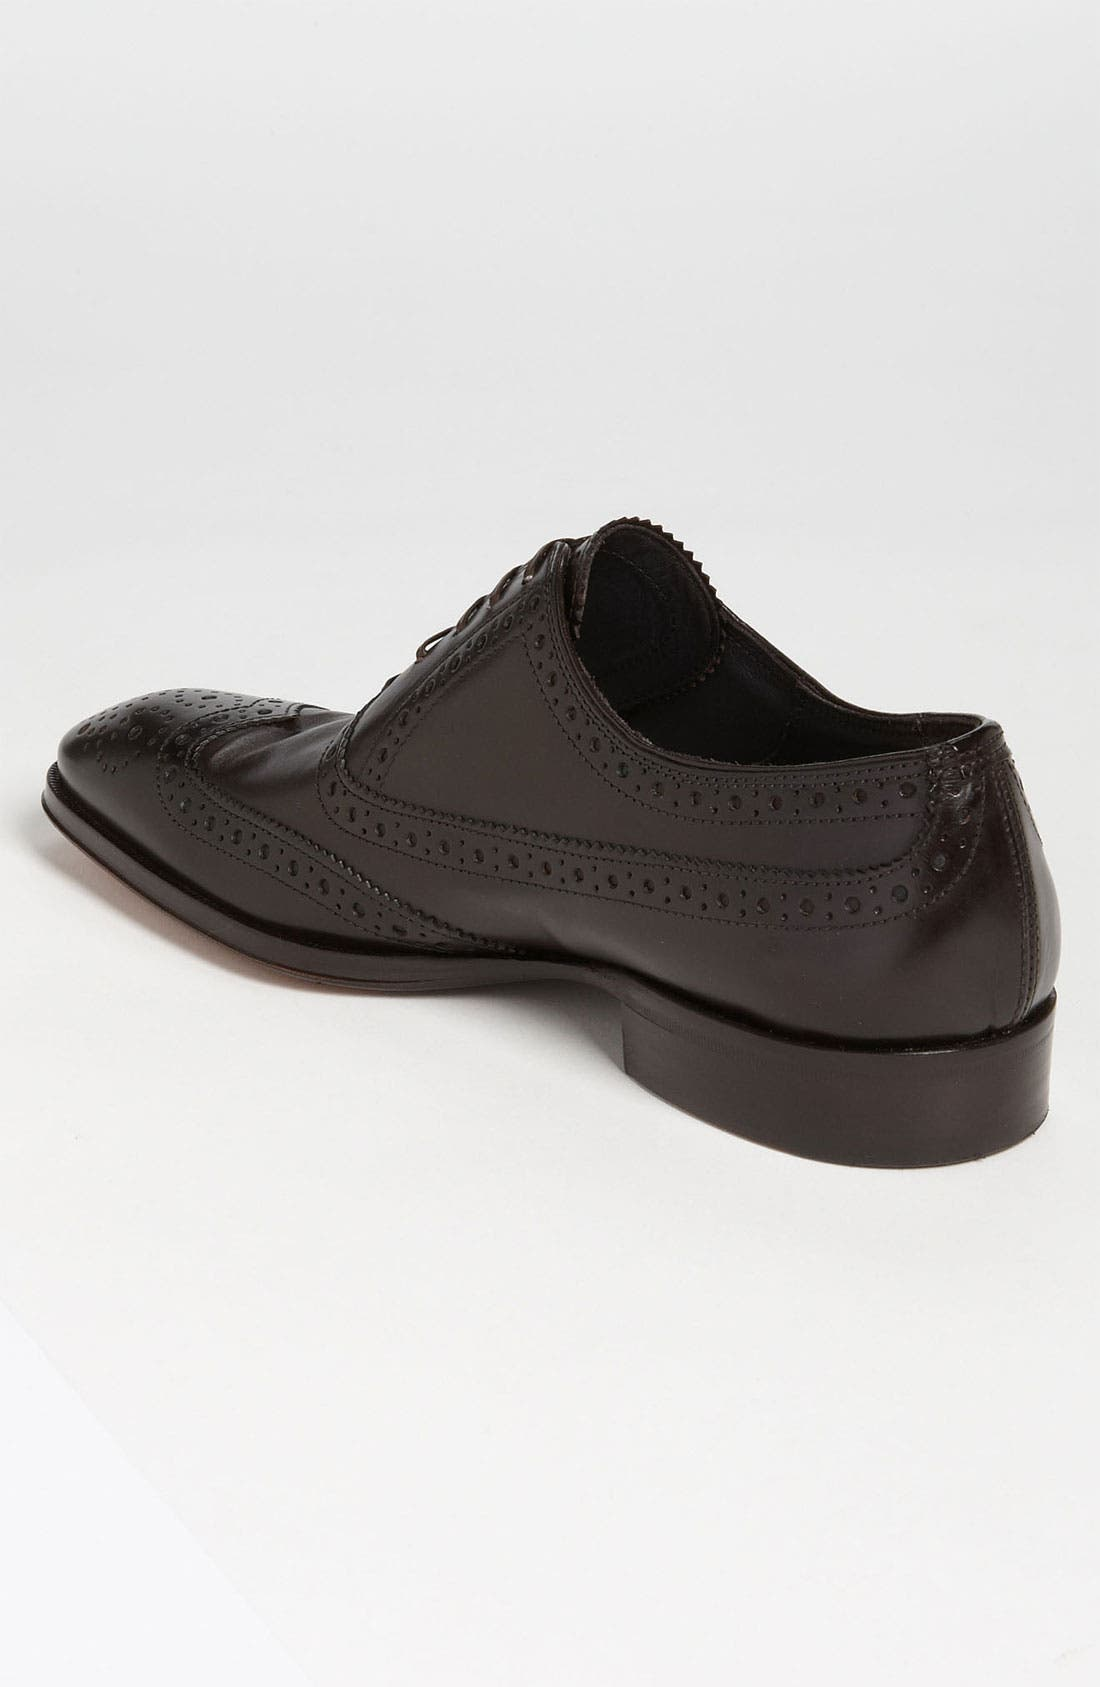 'Windsor' Wingtip Oxford,                             Alternate thumbnail 3, color,                             209